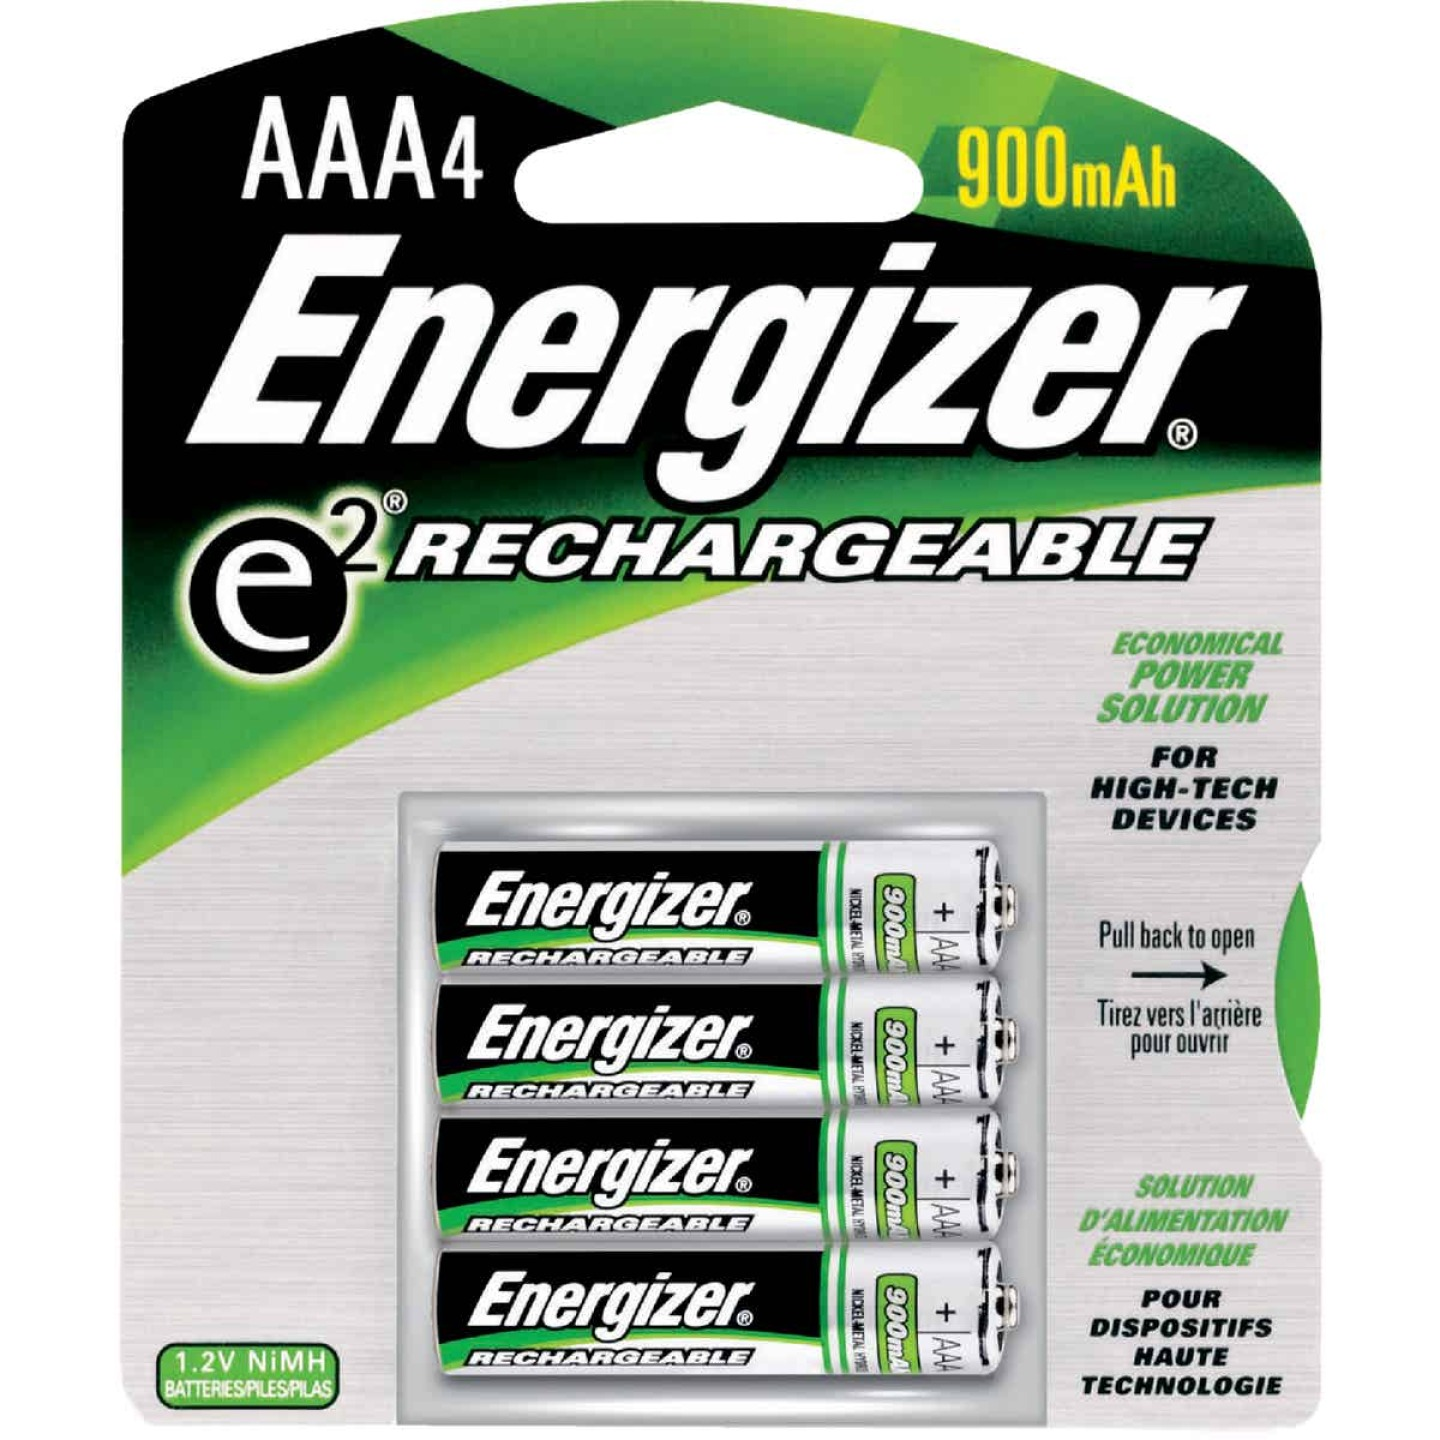 Energizer Recharge AAA NiMH Rechargeable Battery (4-Pack) Image 1